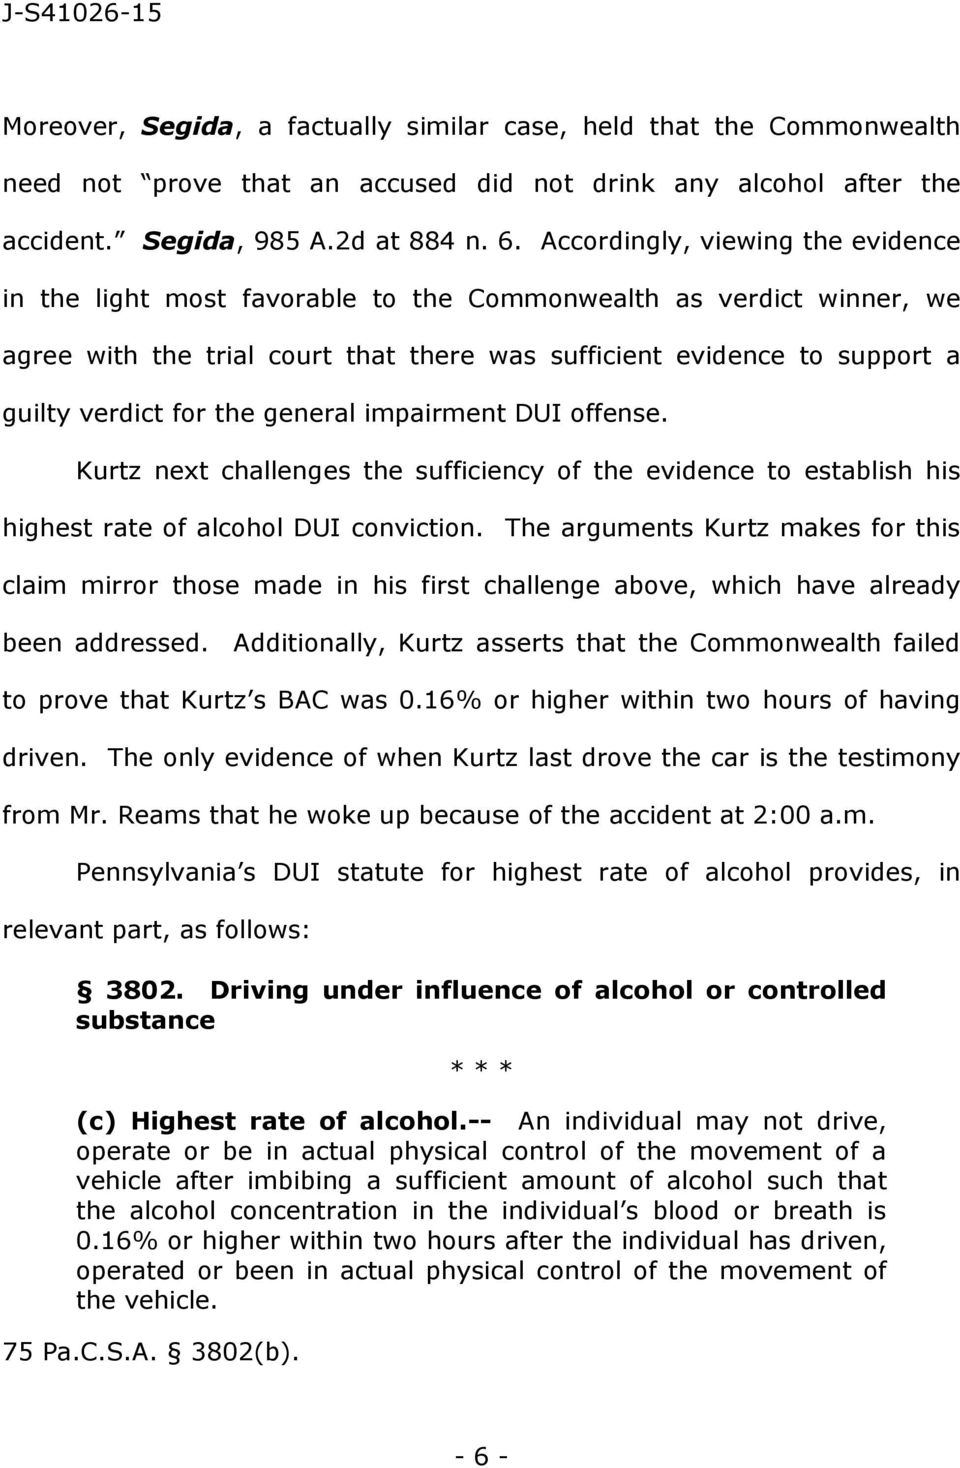 the general impairment DUI offense. Kurtz next challenges the sufficiency of the evidence to establish his highest rate of alcohol DUI conviction.